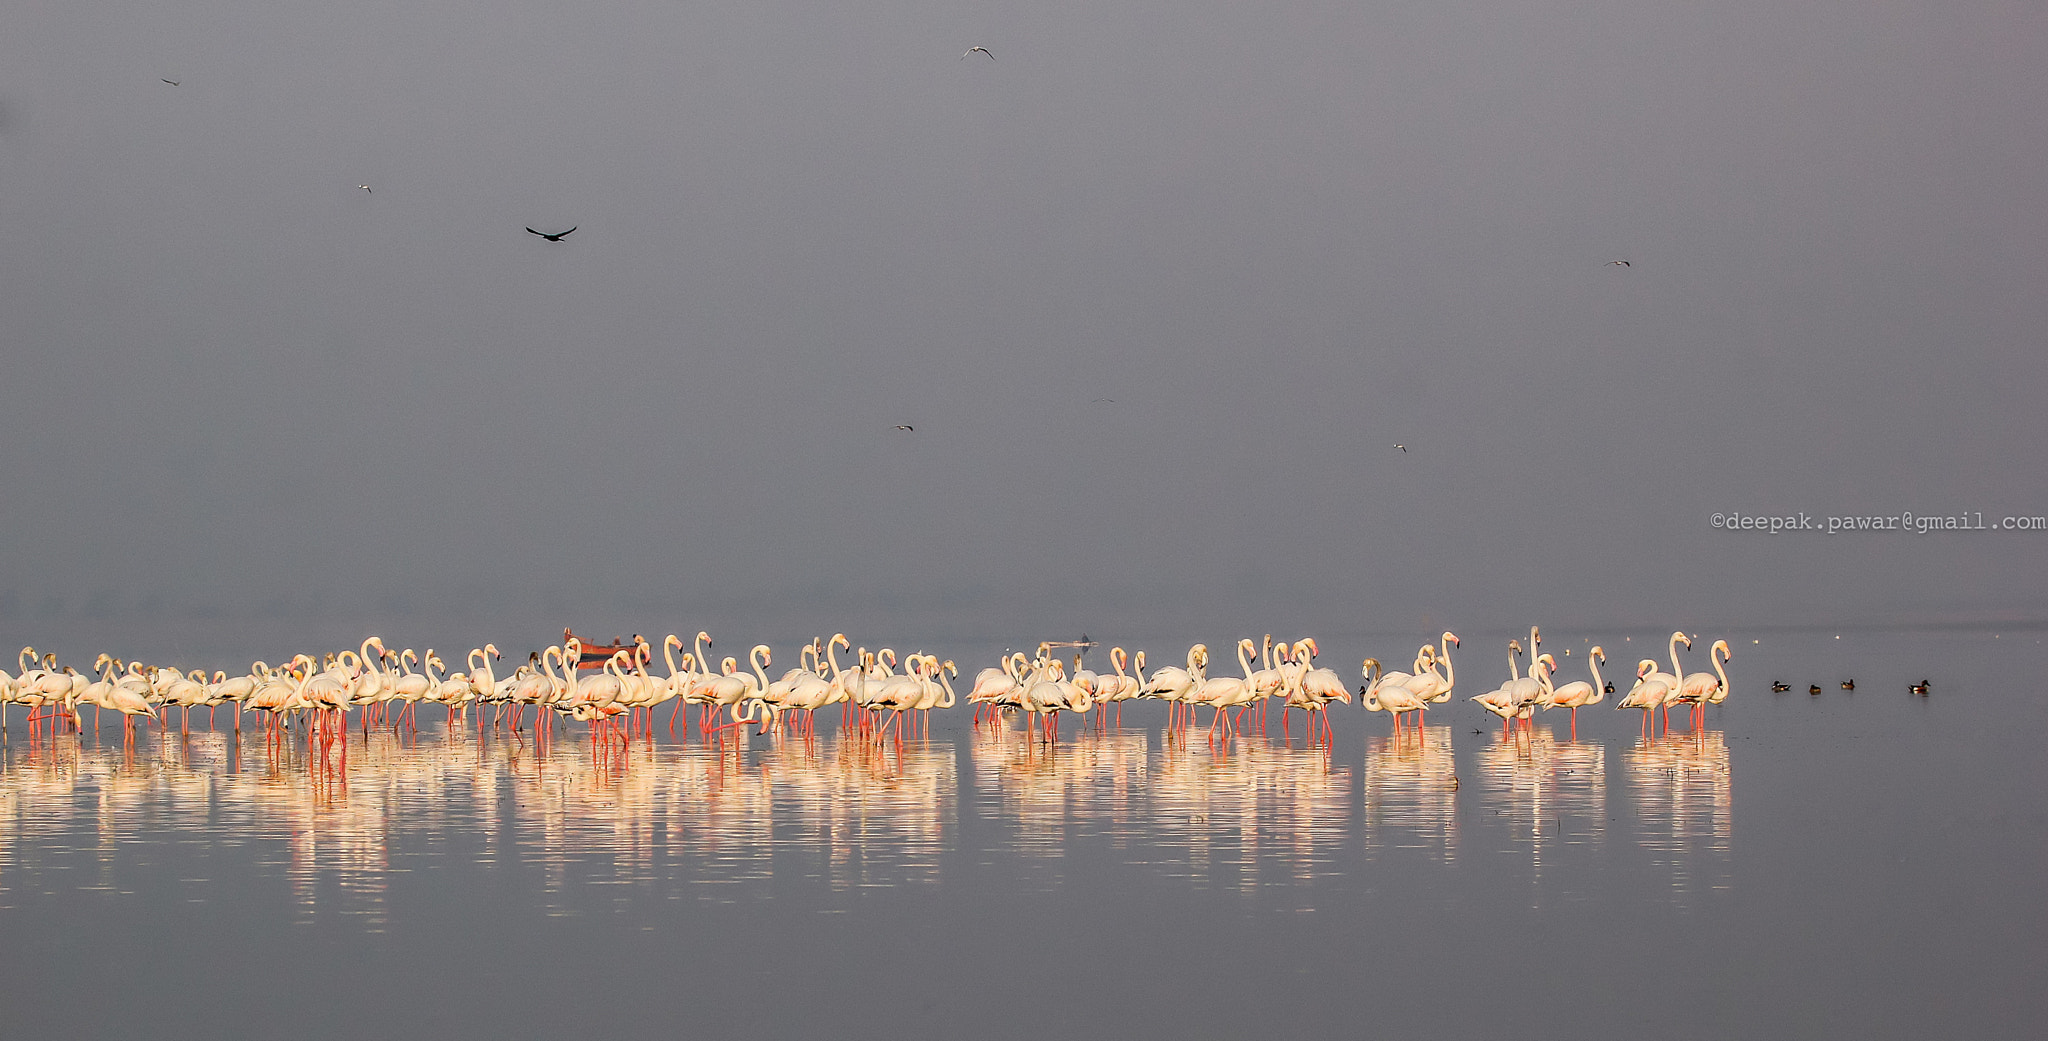 Photograph Winter conference by Deepak Pawar on 500px